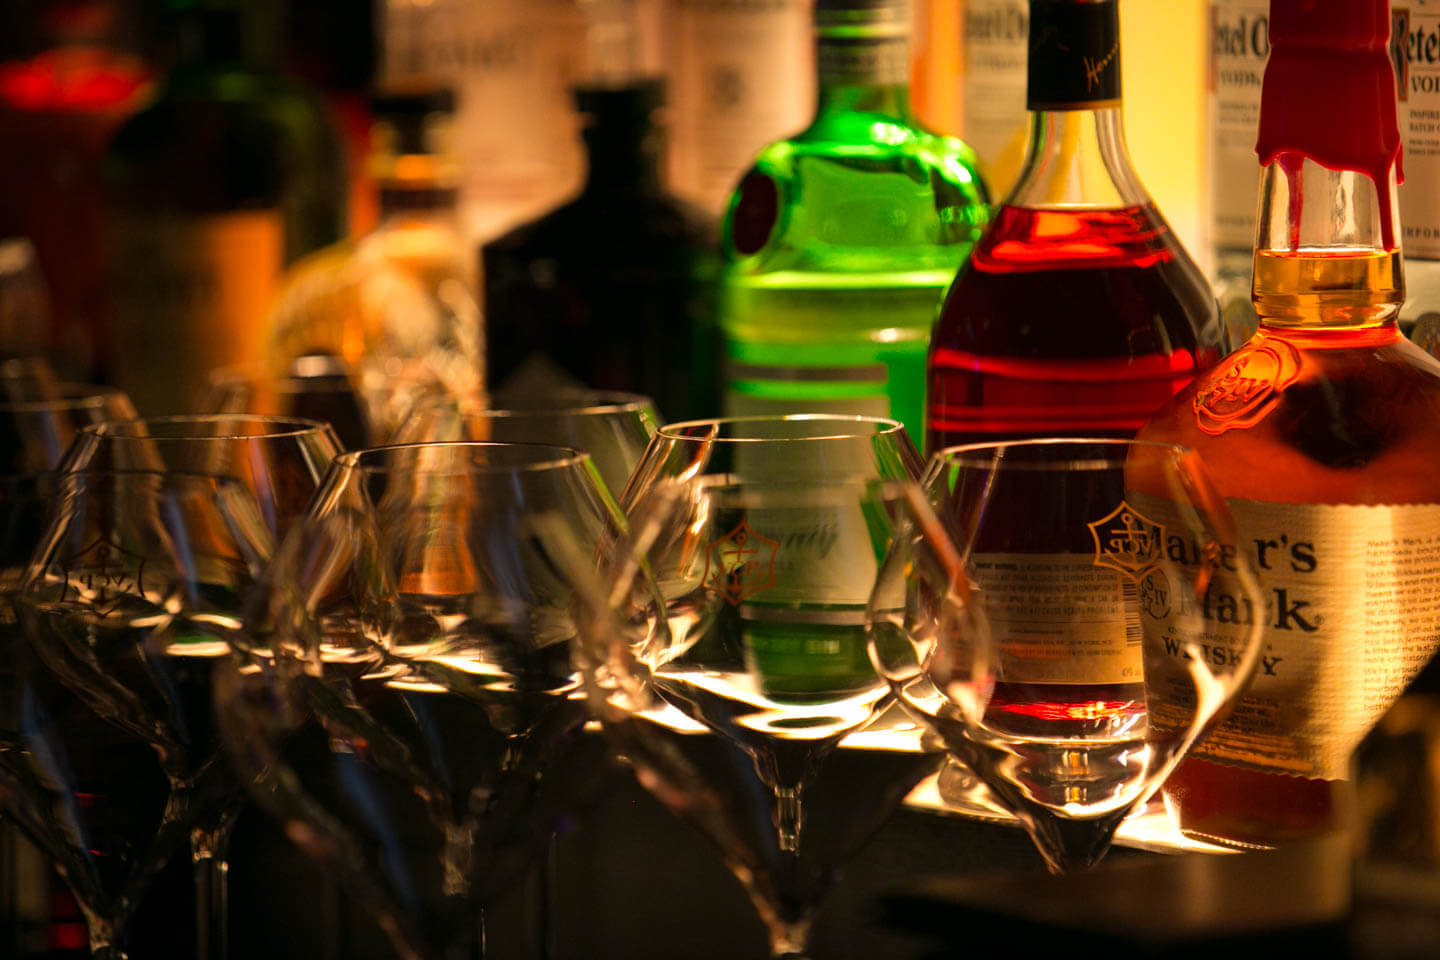 Image of Top Shelf liqour at Sapphire Happy Hour